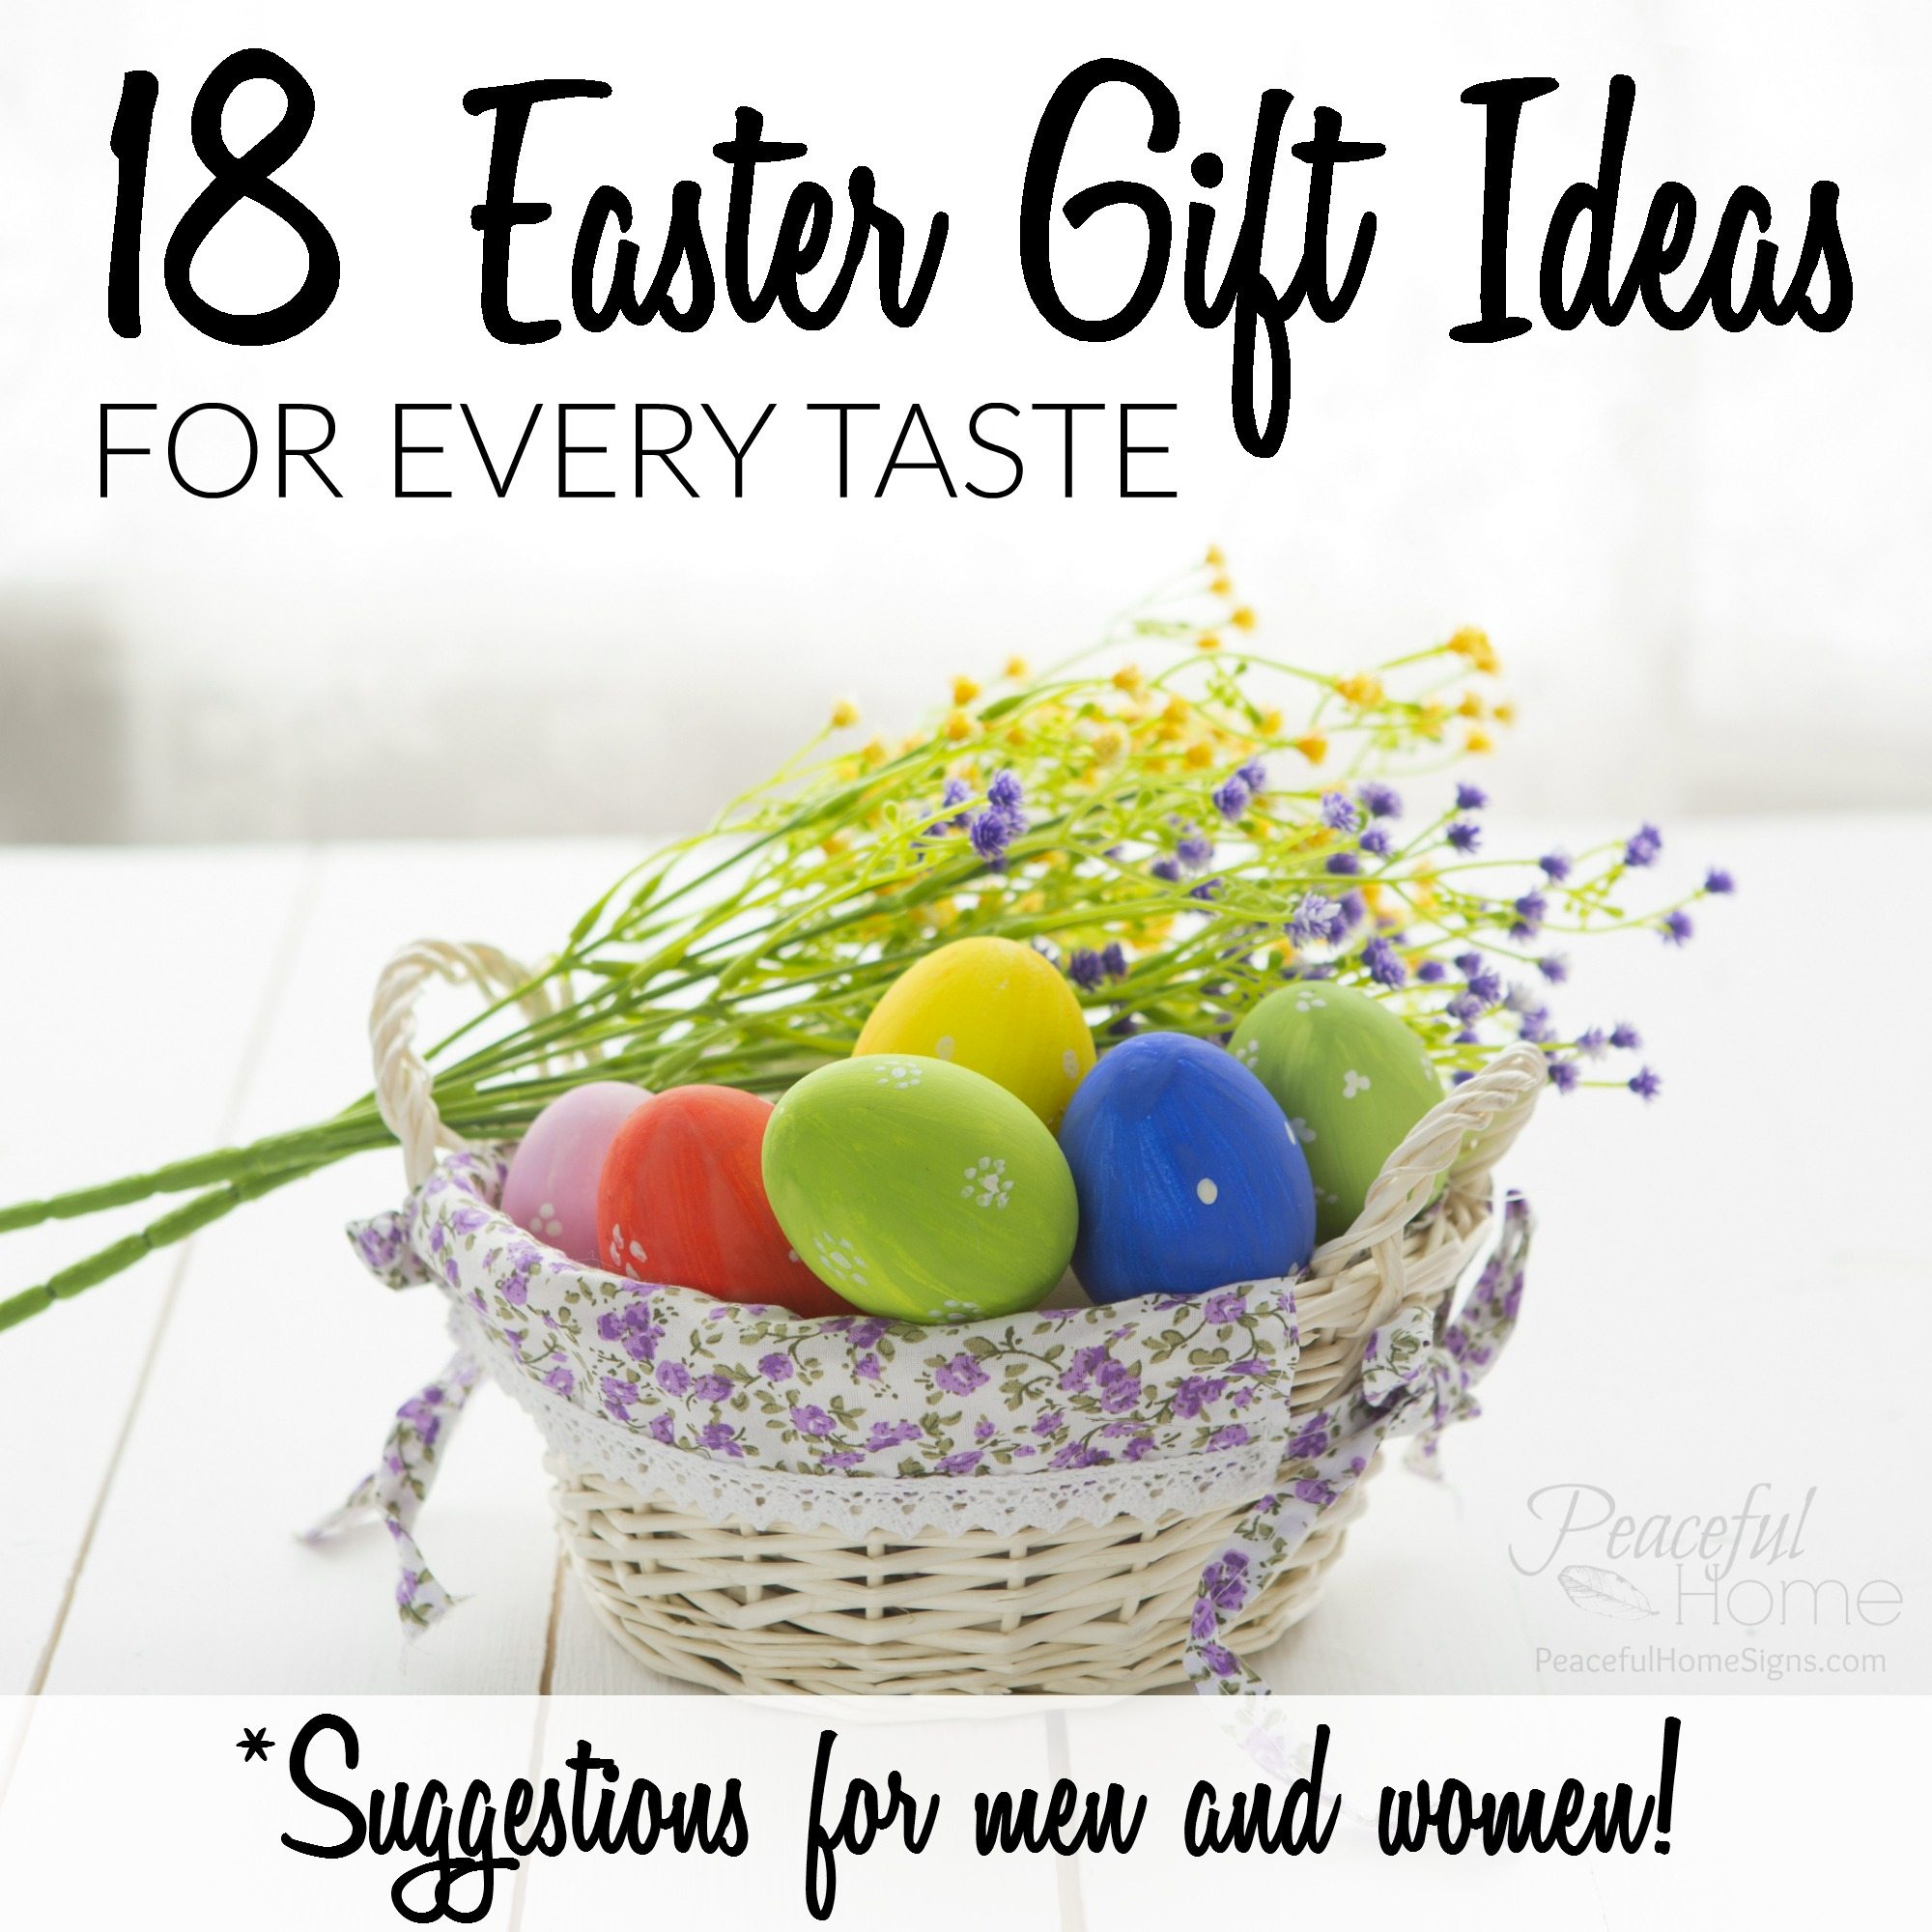 18 easter gift ideas for every taste men women peaceful home negle Gallery